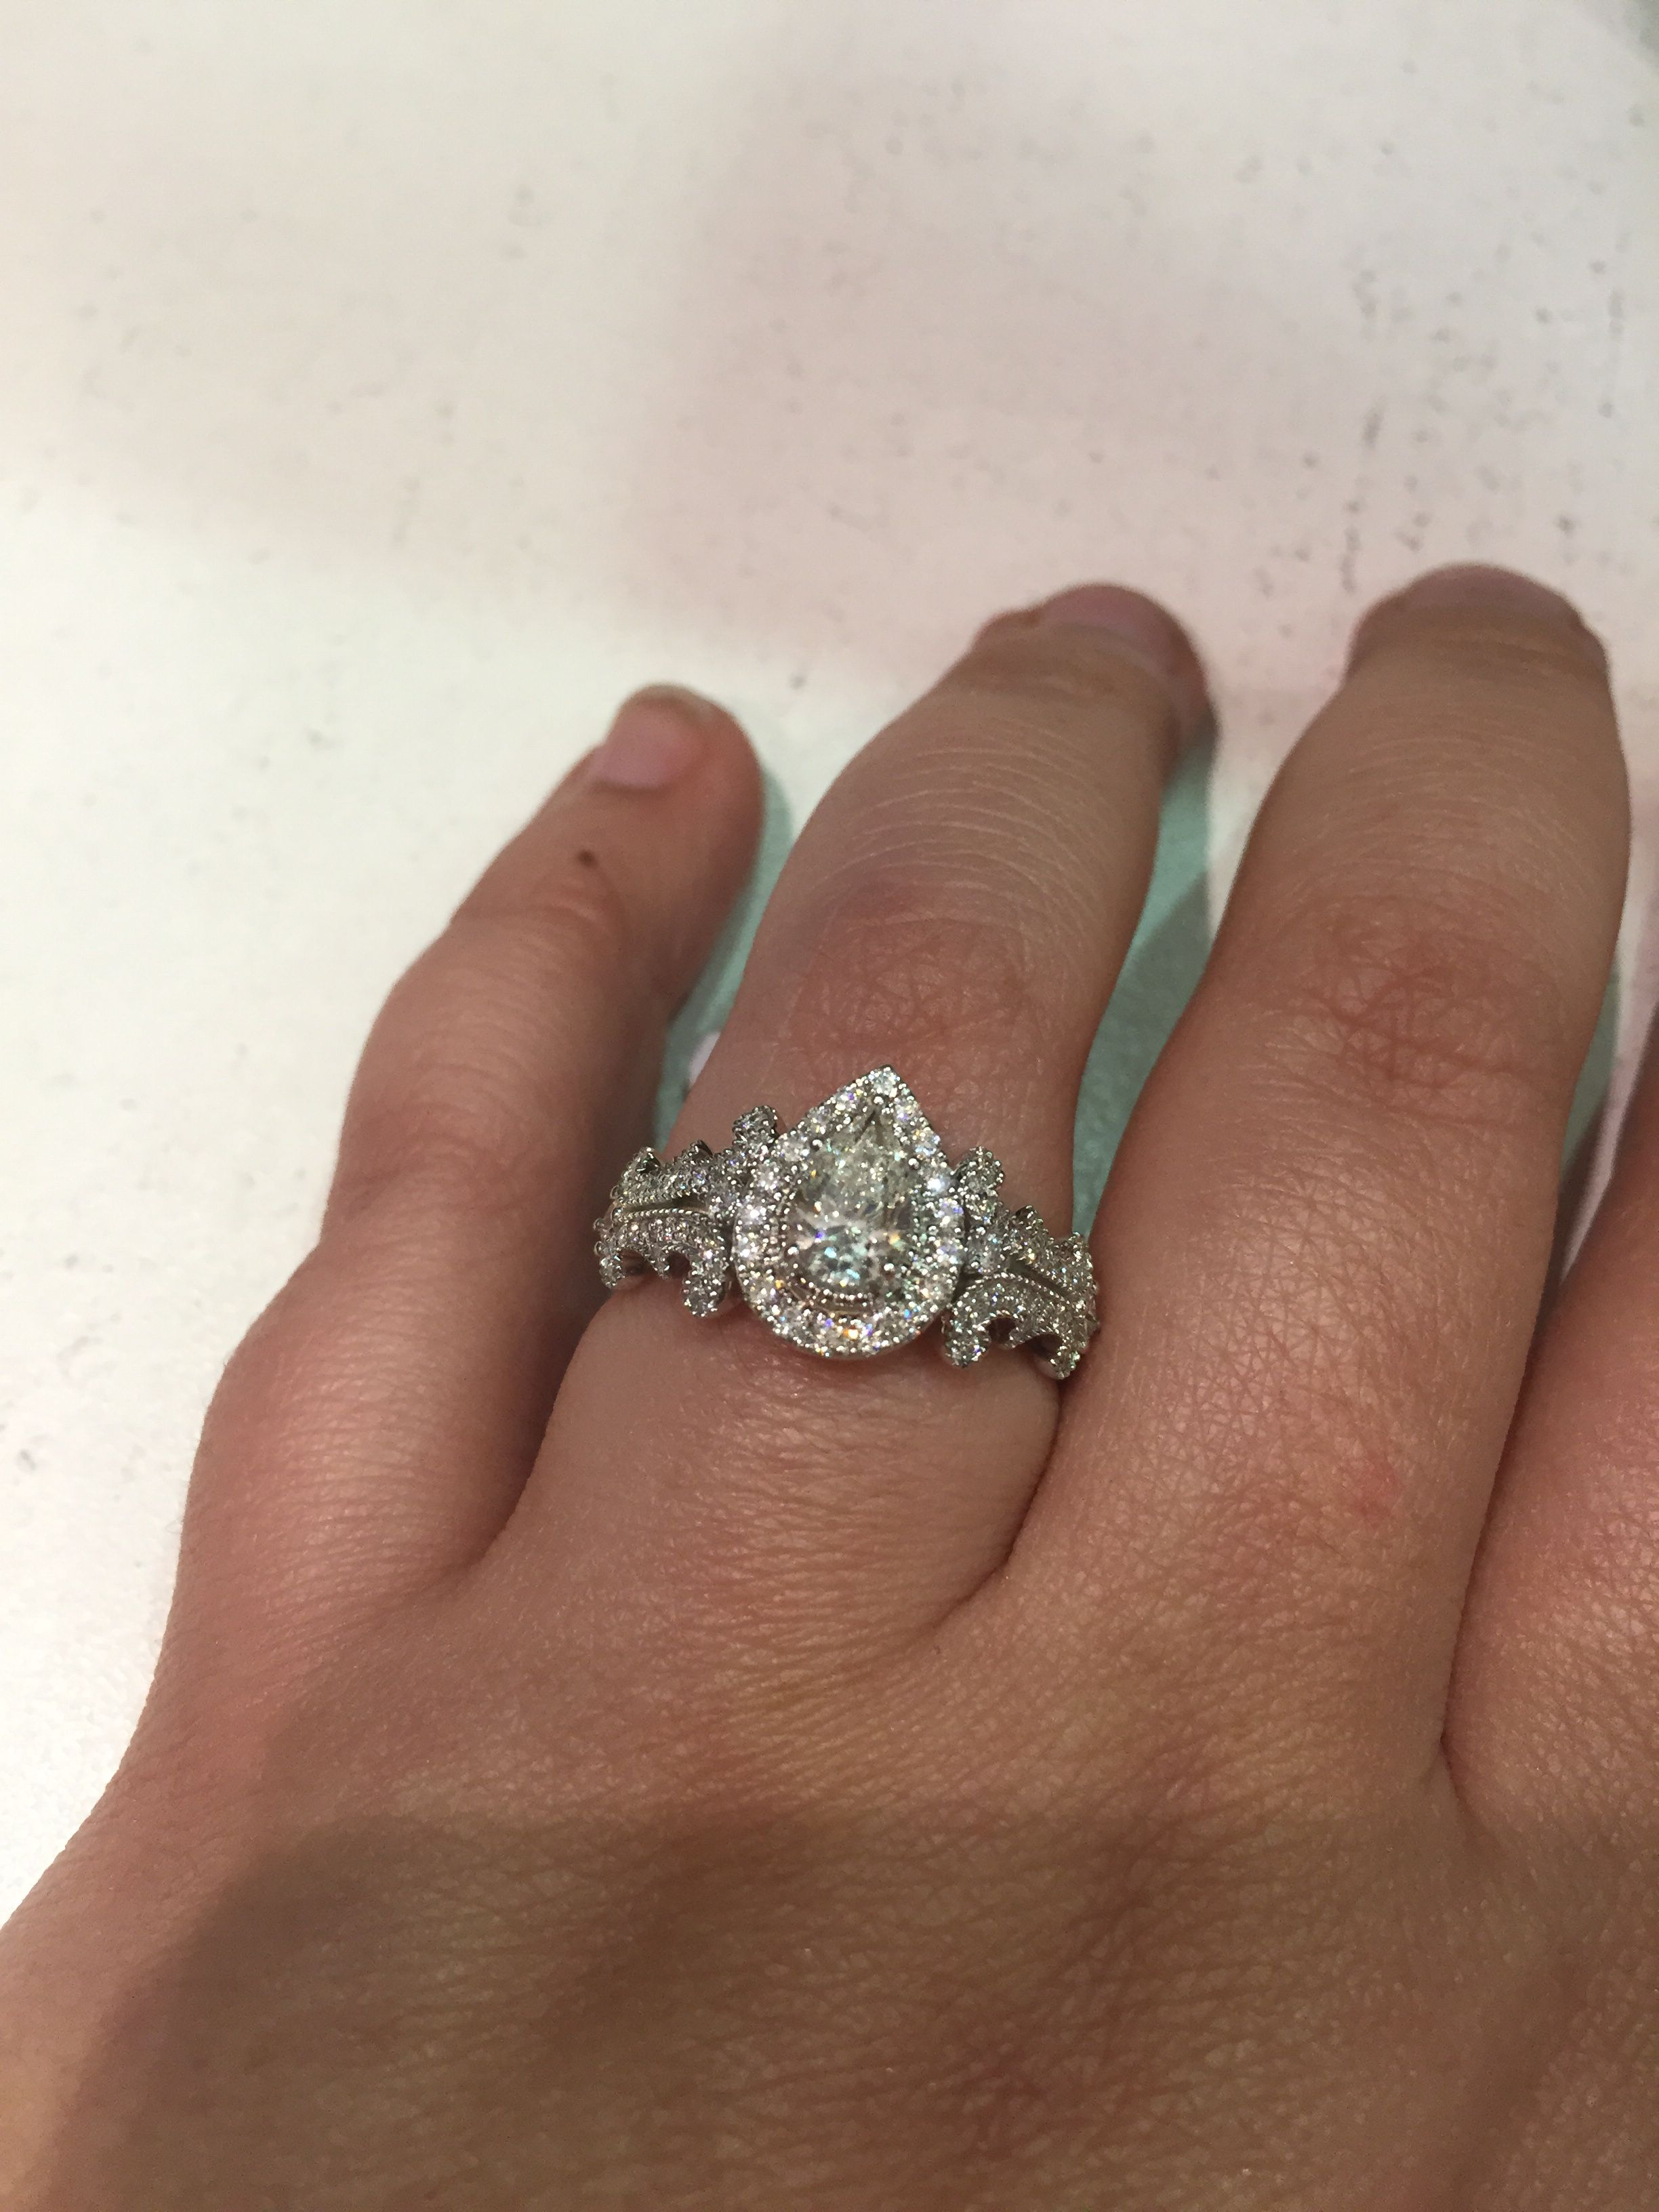 Vera Wang Vintage Style Pear Engagement Ring! I Love This So Much!